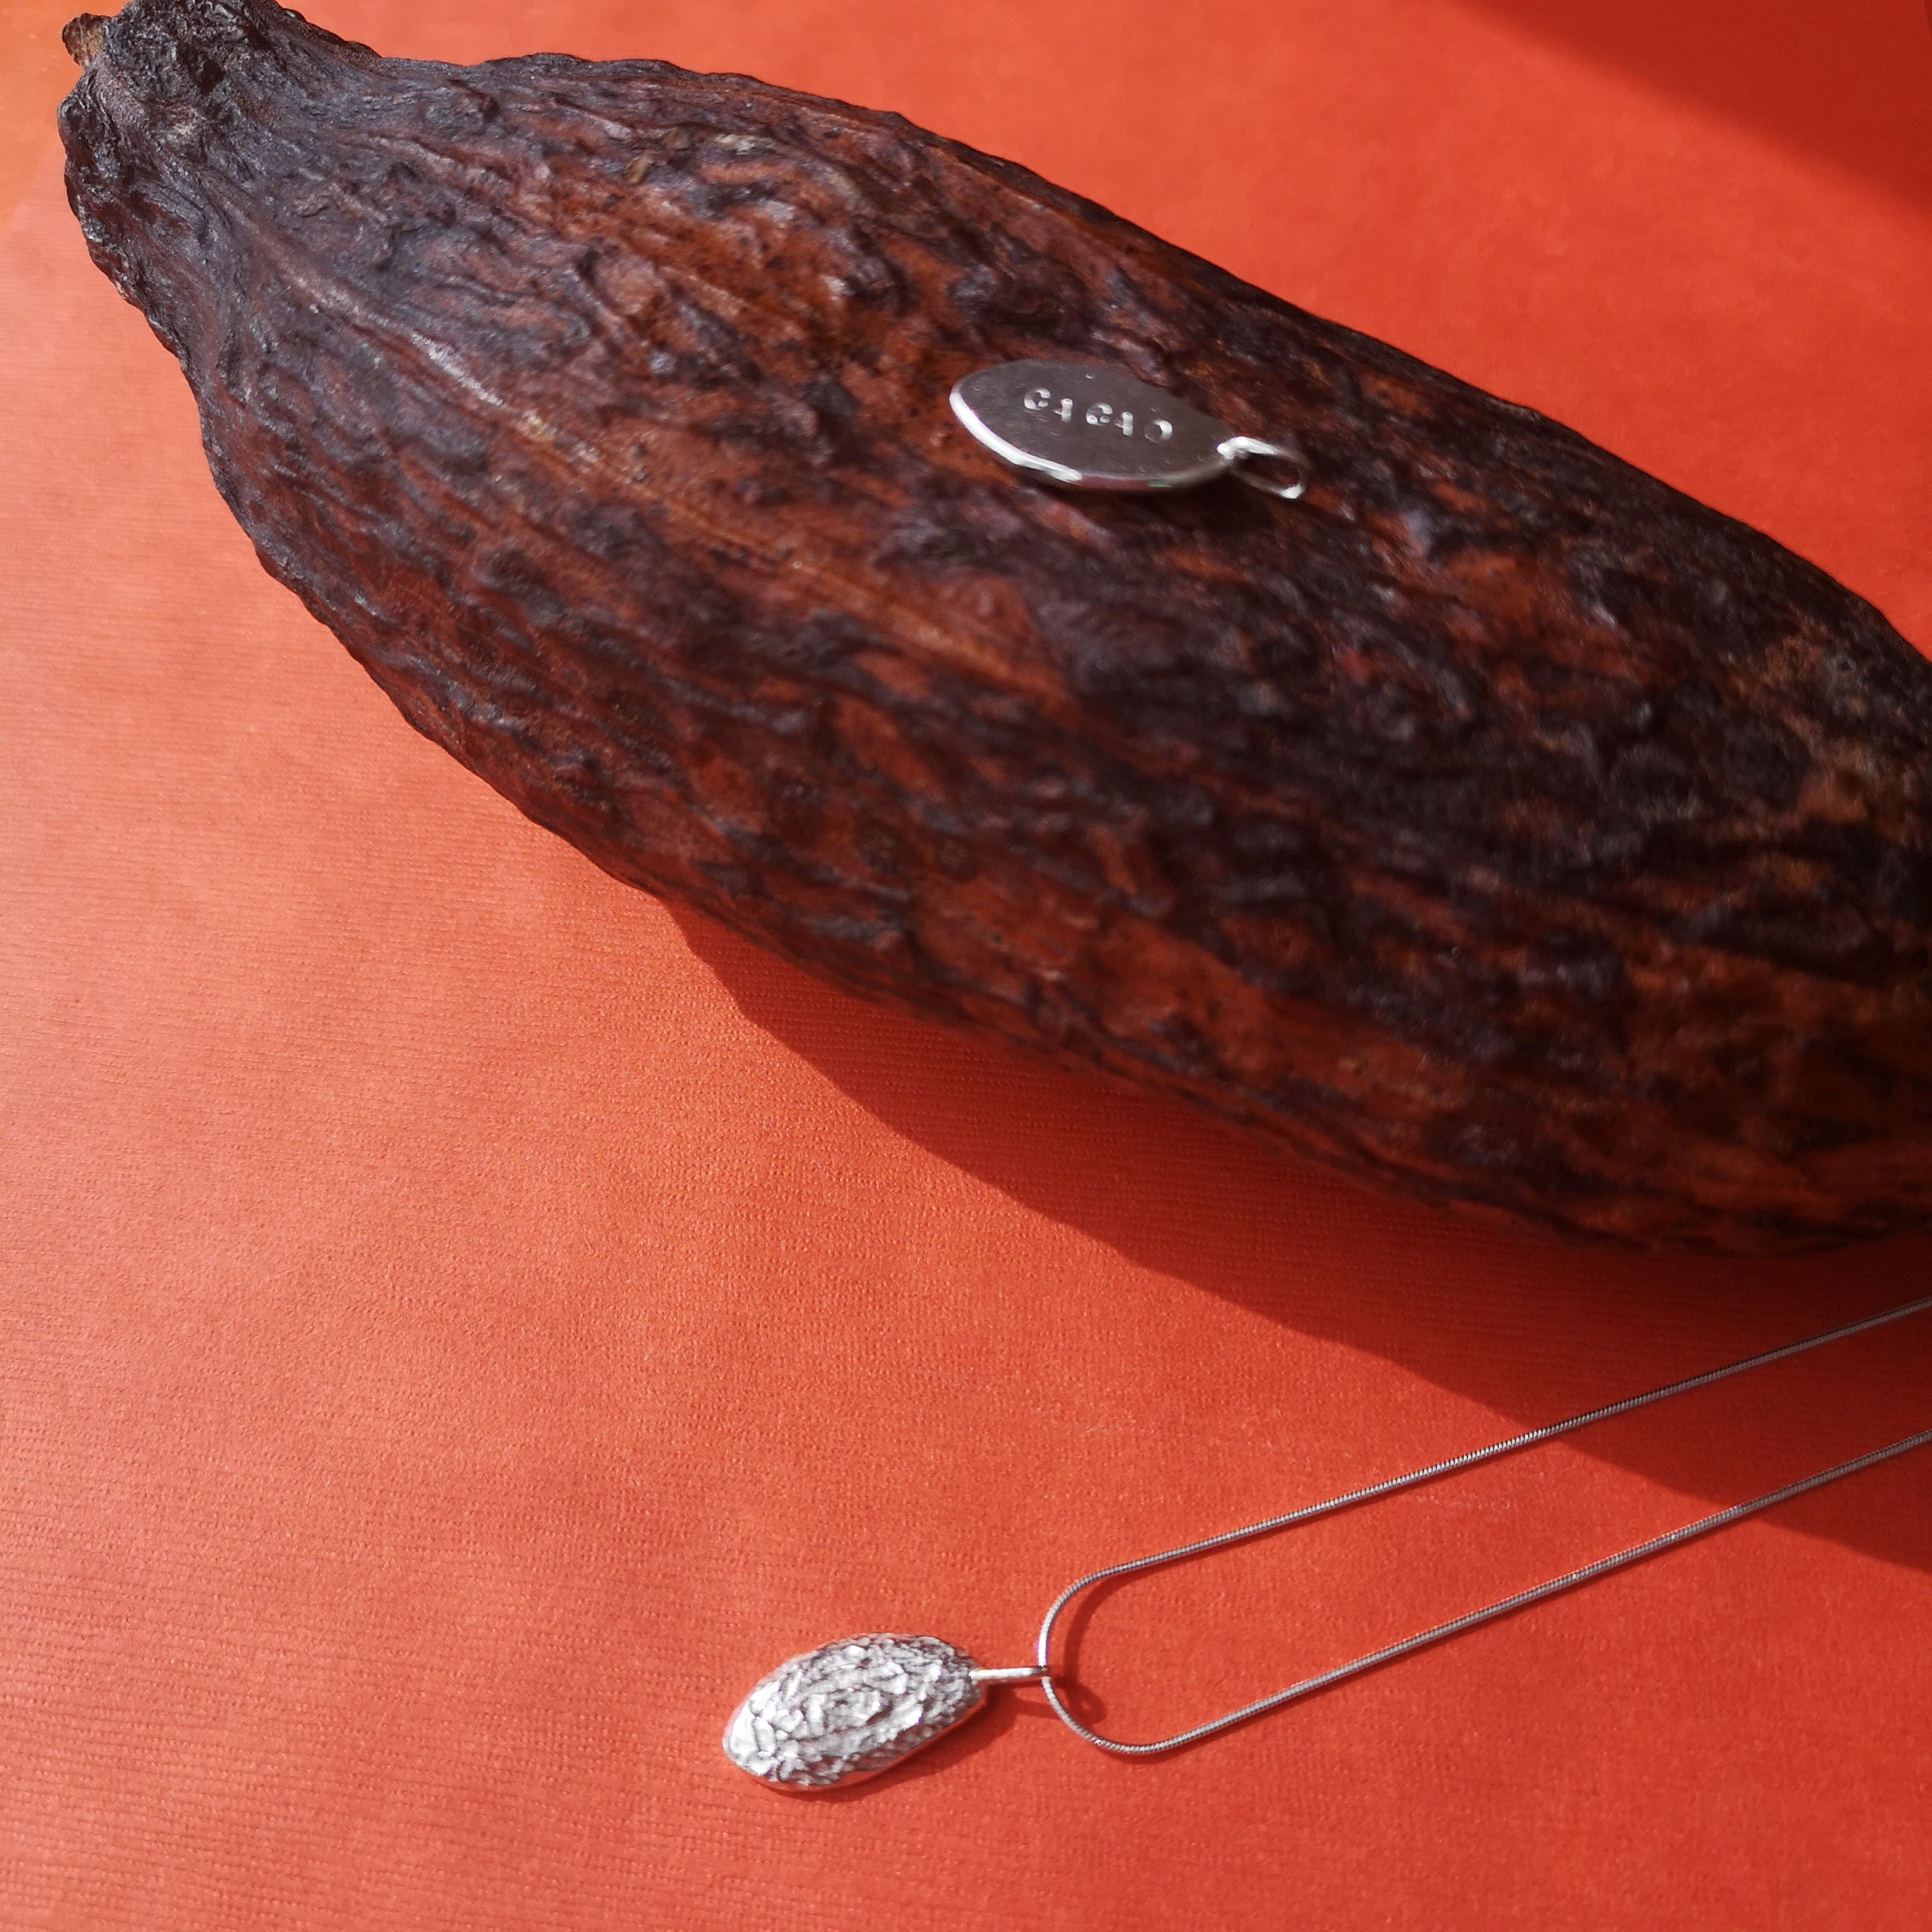 Cacao pod necklace show with a dried cacao pod